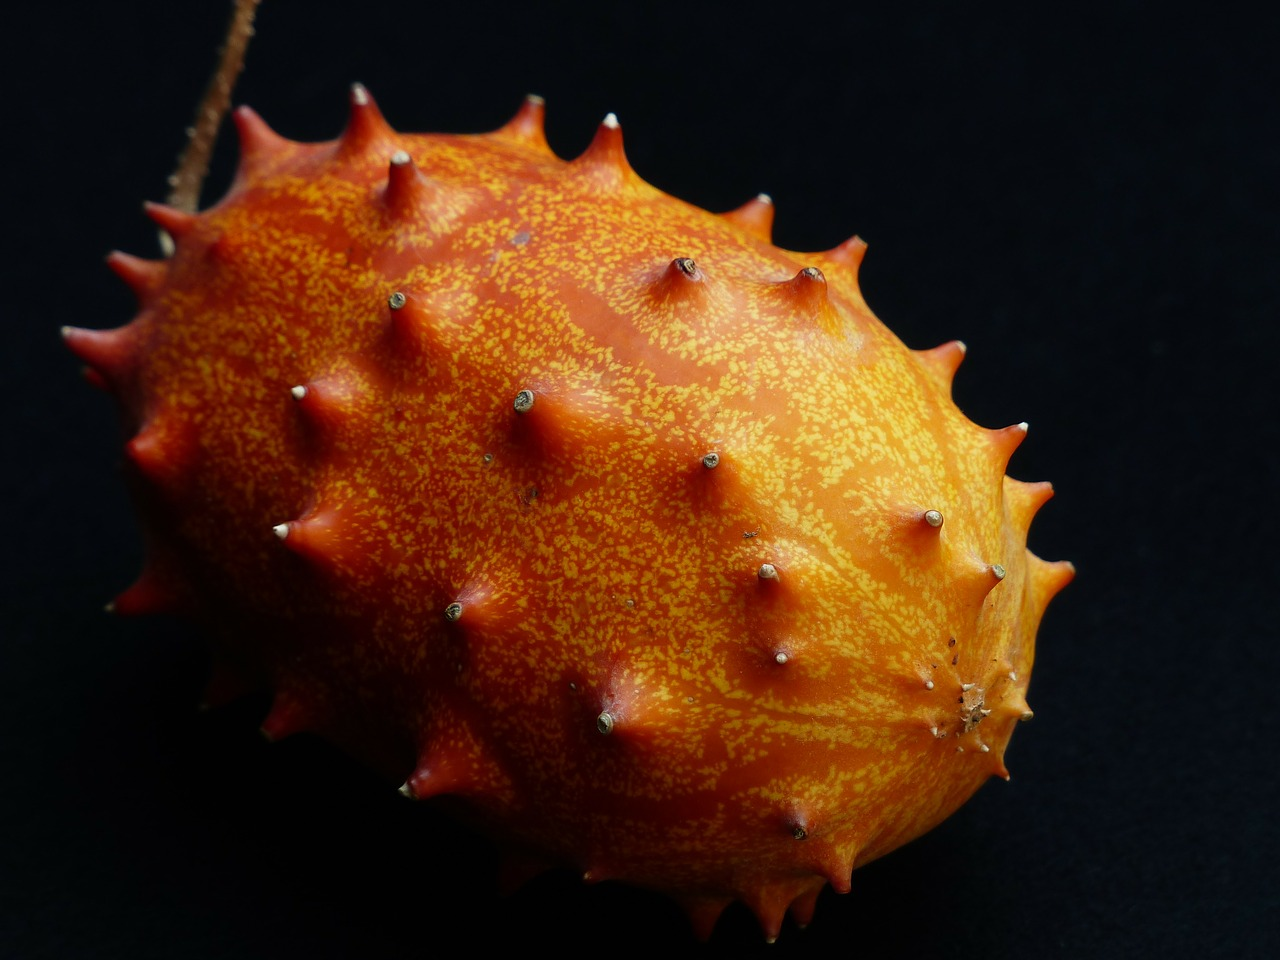 kiwano fruit horn cucumber free photo